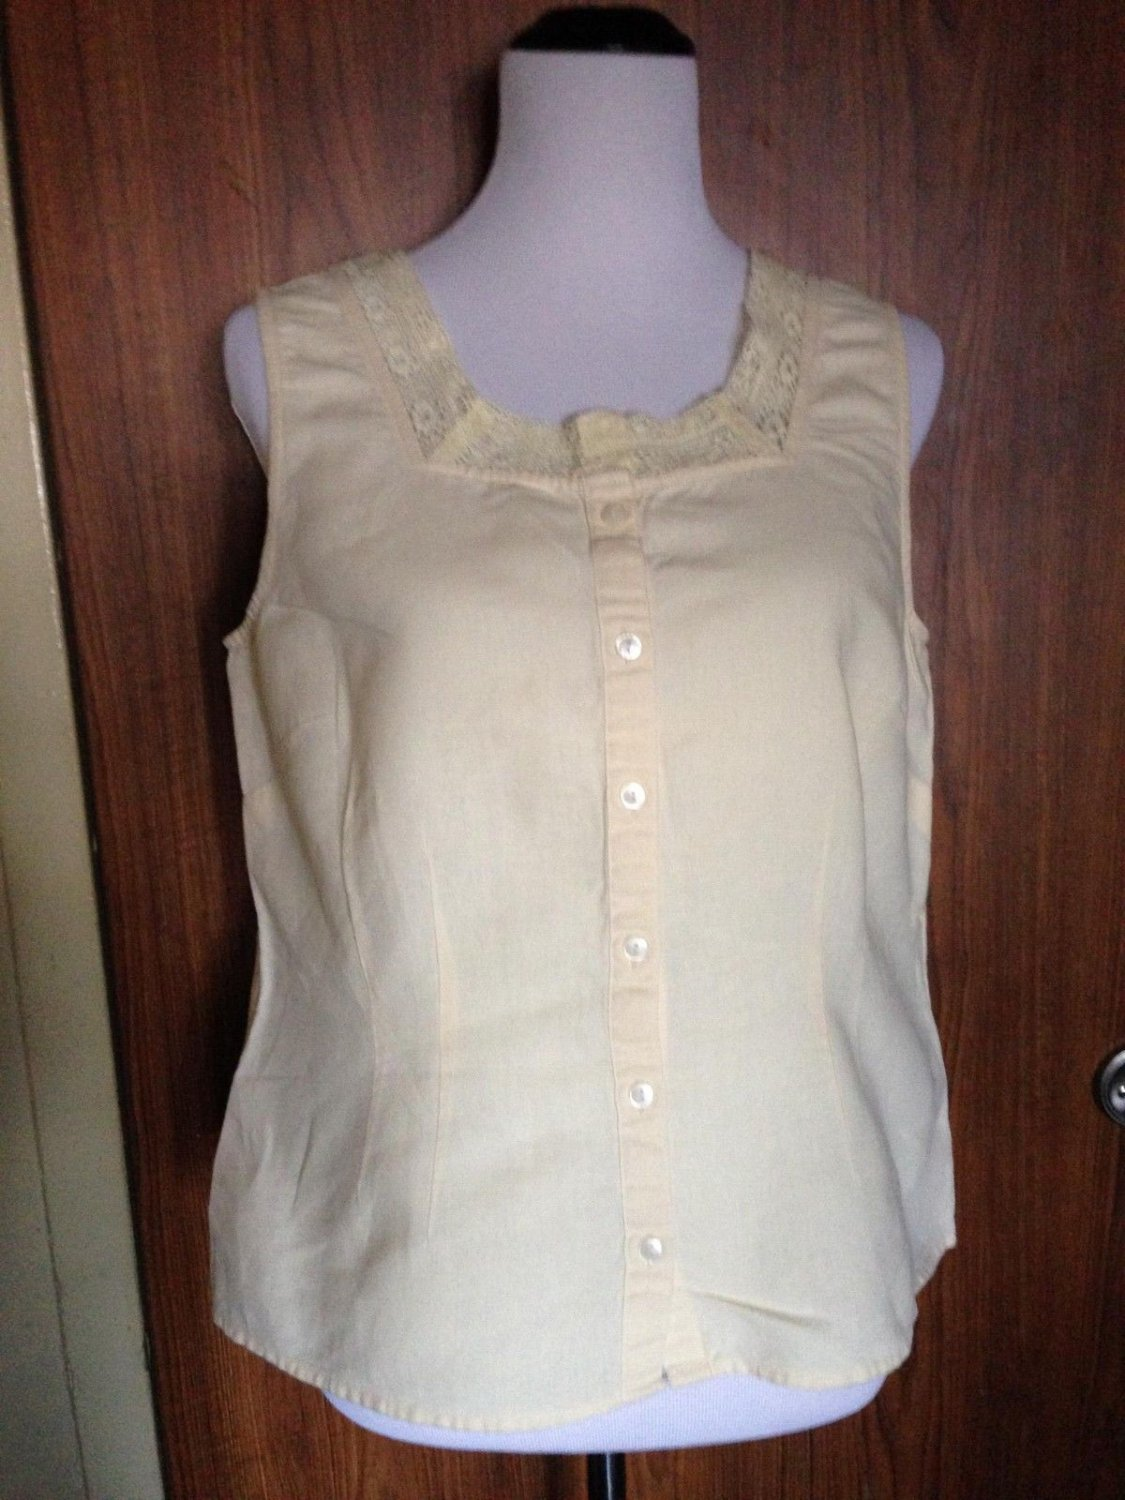 J. JILL Pale Yellow Cotton Blend Sleeveless Tank Lace Square Collar Detail SZ M